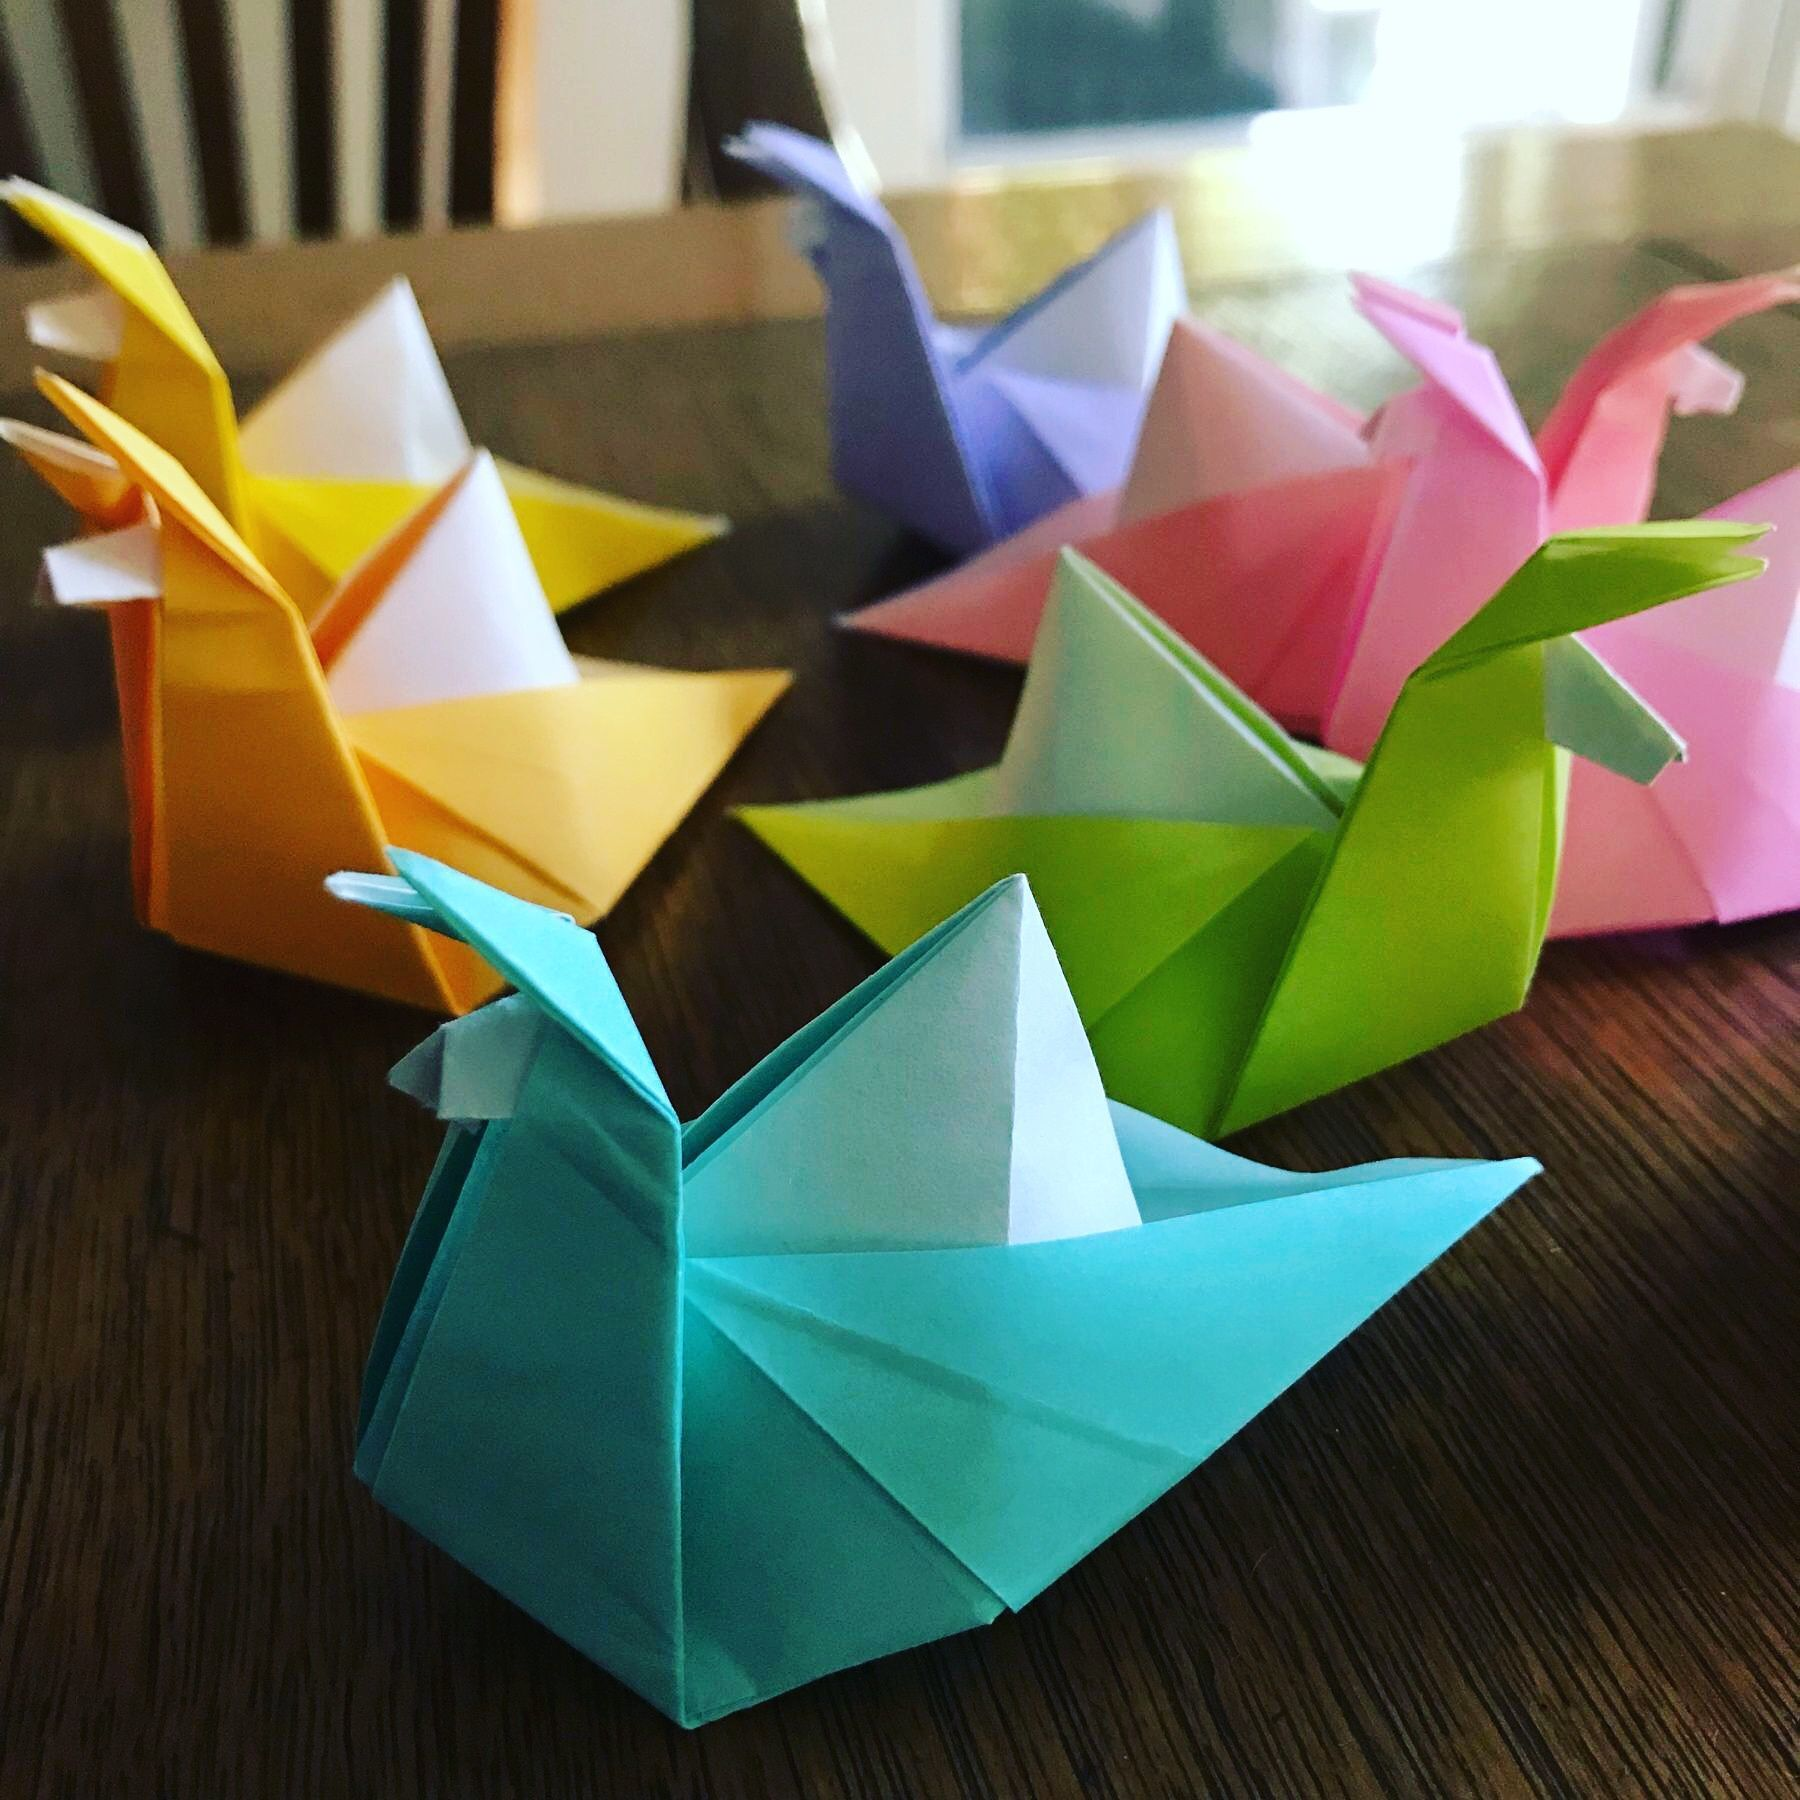 Tampa Bay Origami Group